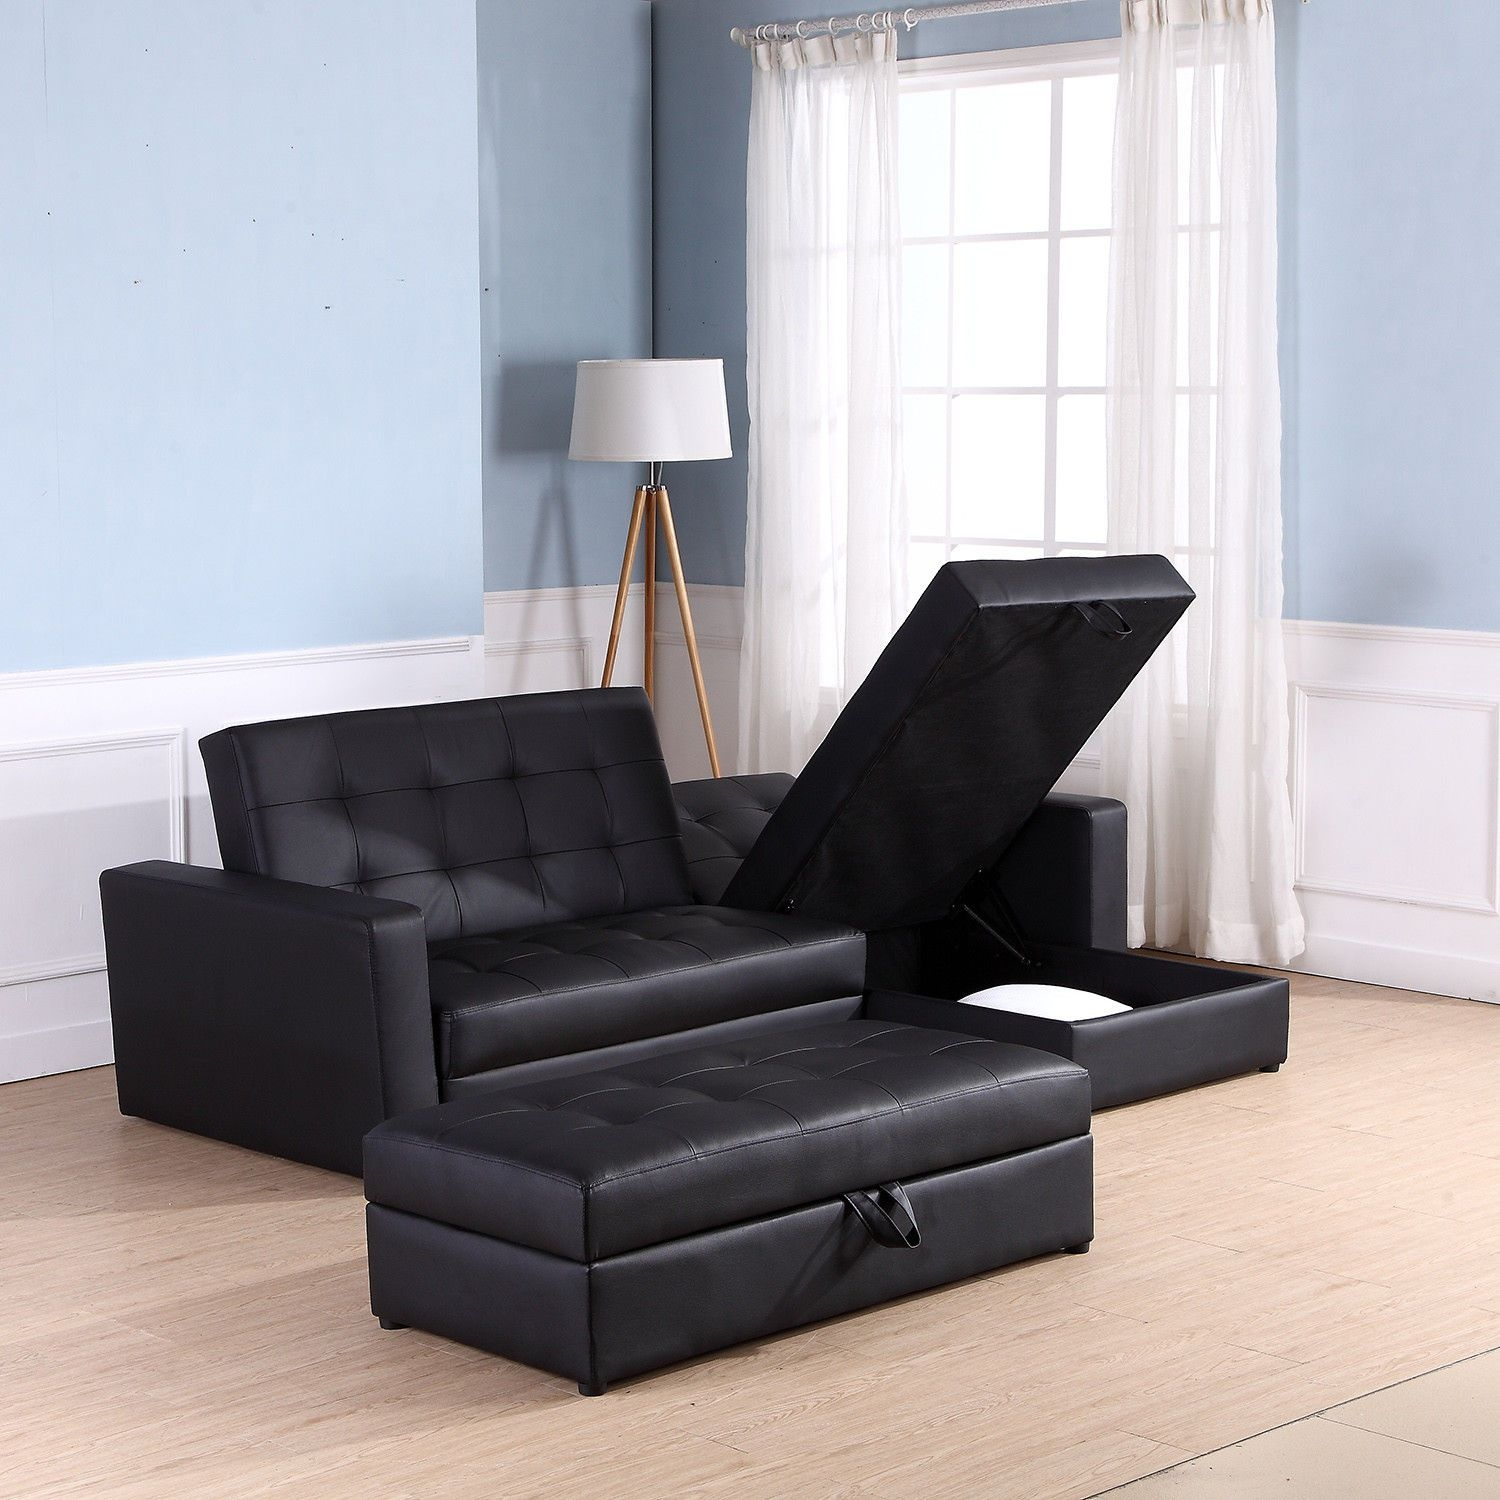 Sofa Bed Storage Sleeper Chaise Loveseat Couch Sectional Living Room Furniture  Ebay